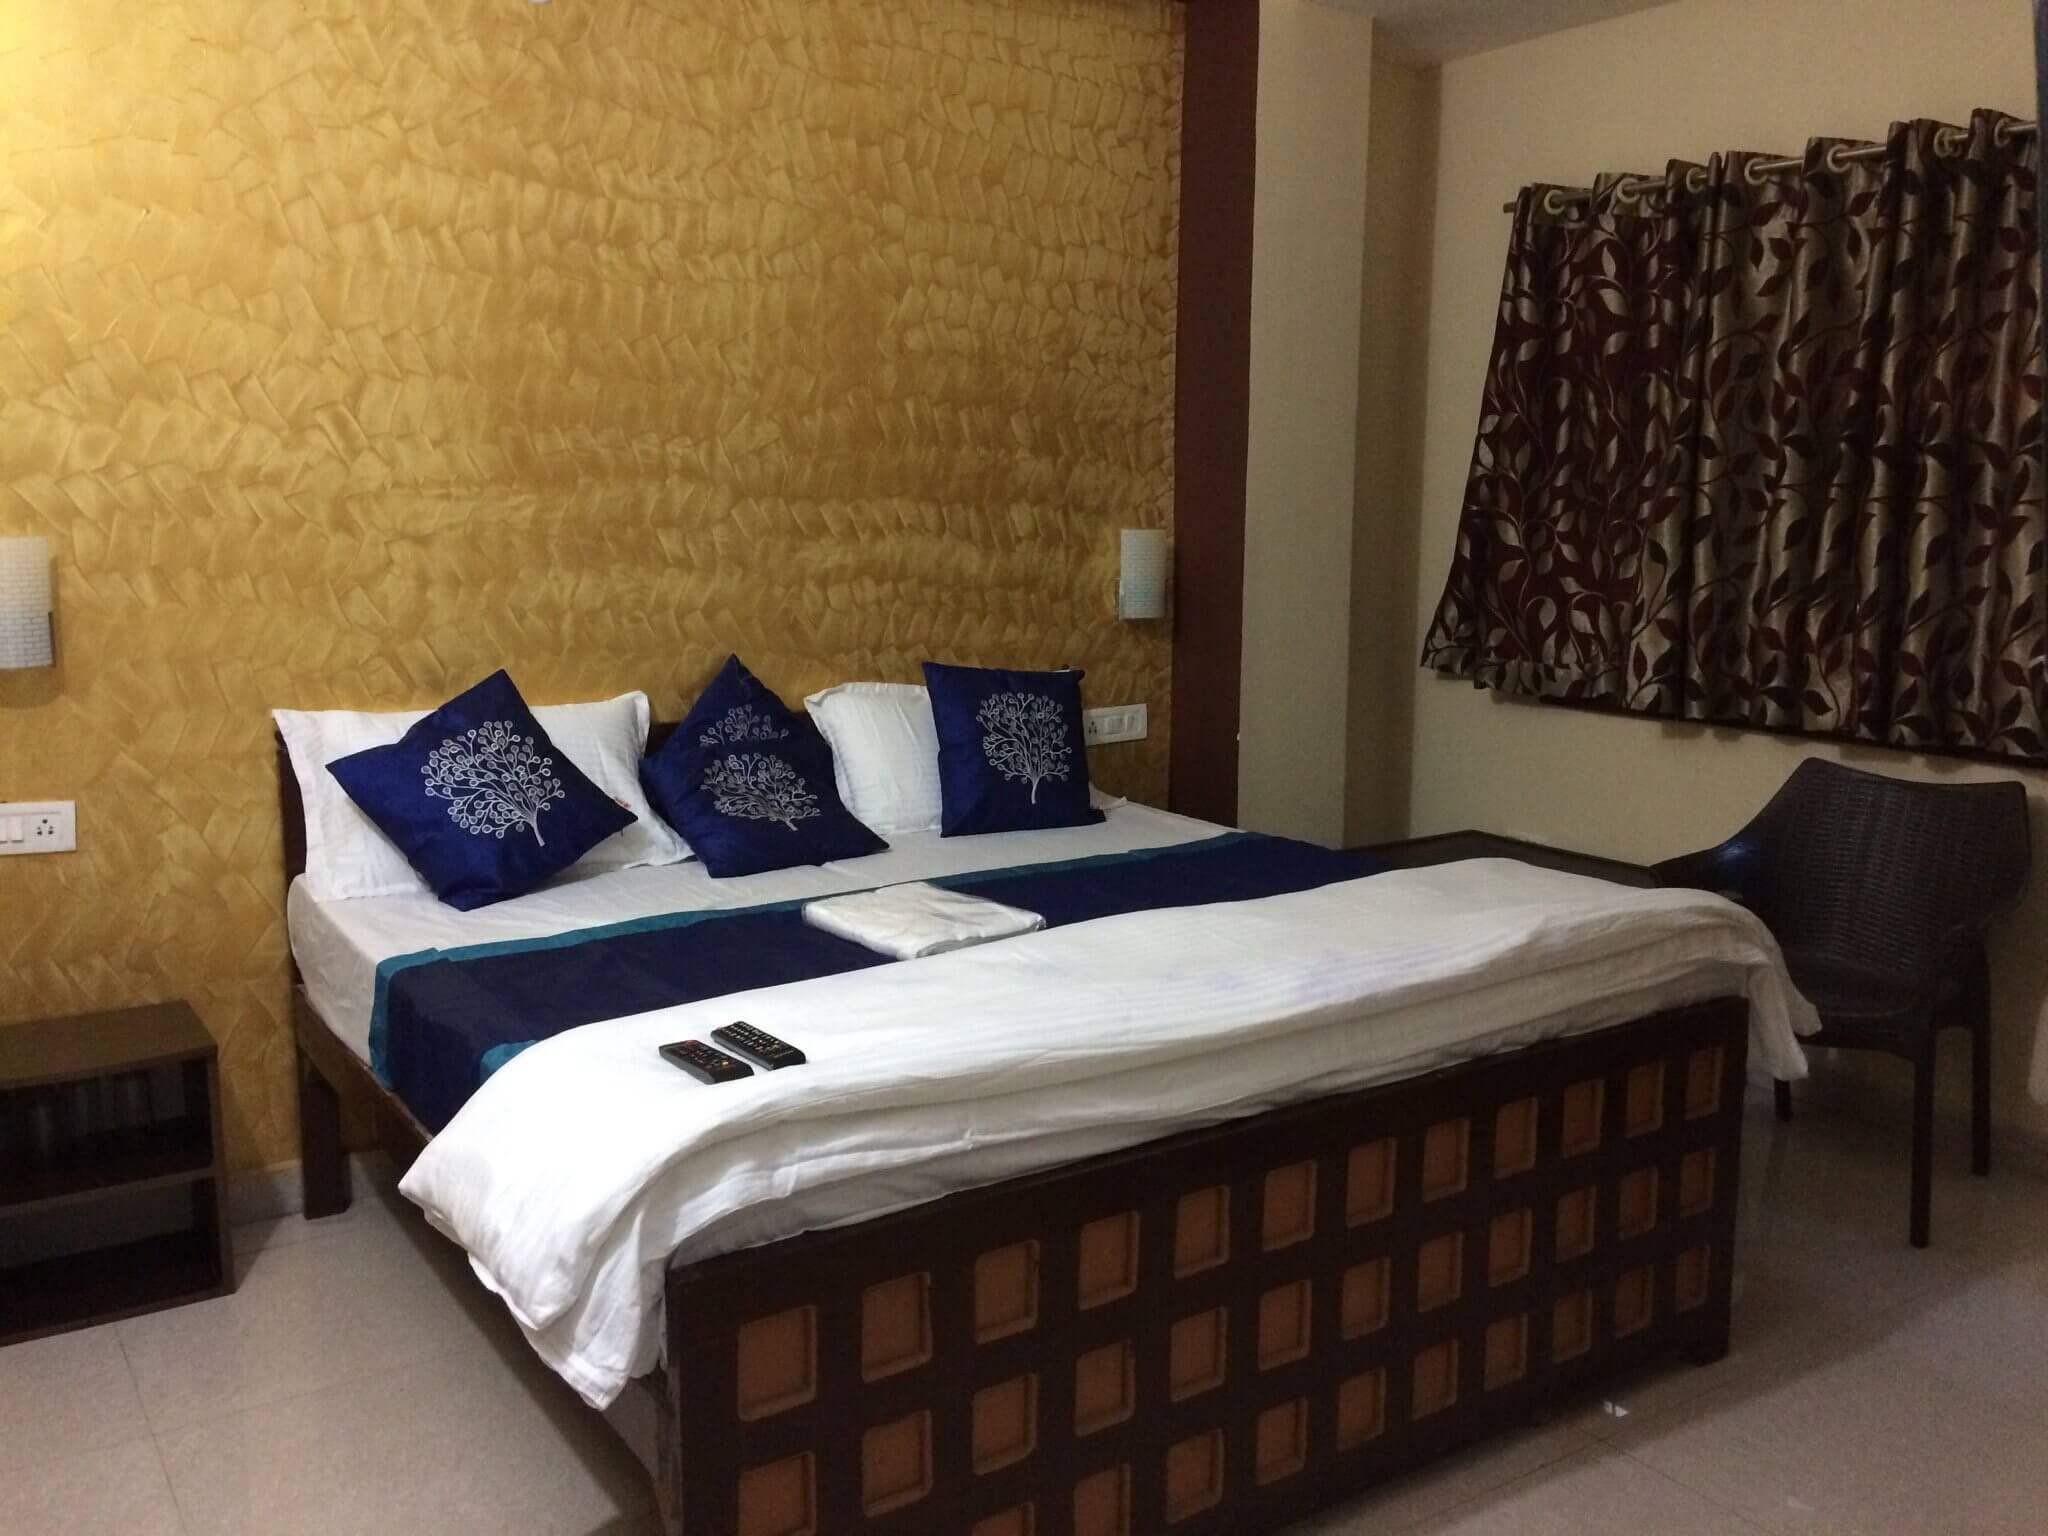 a kind size bed in a hotel room in Lansdowne